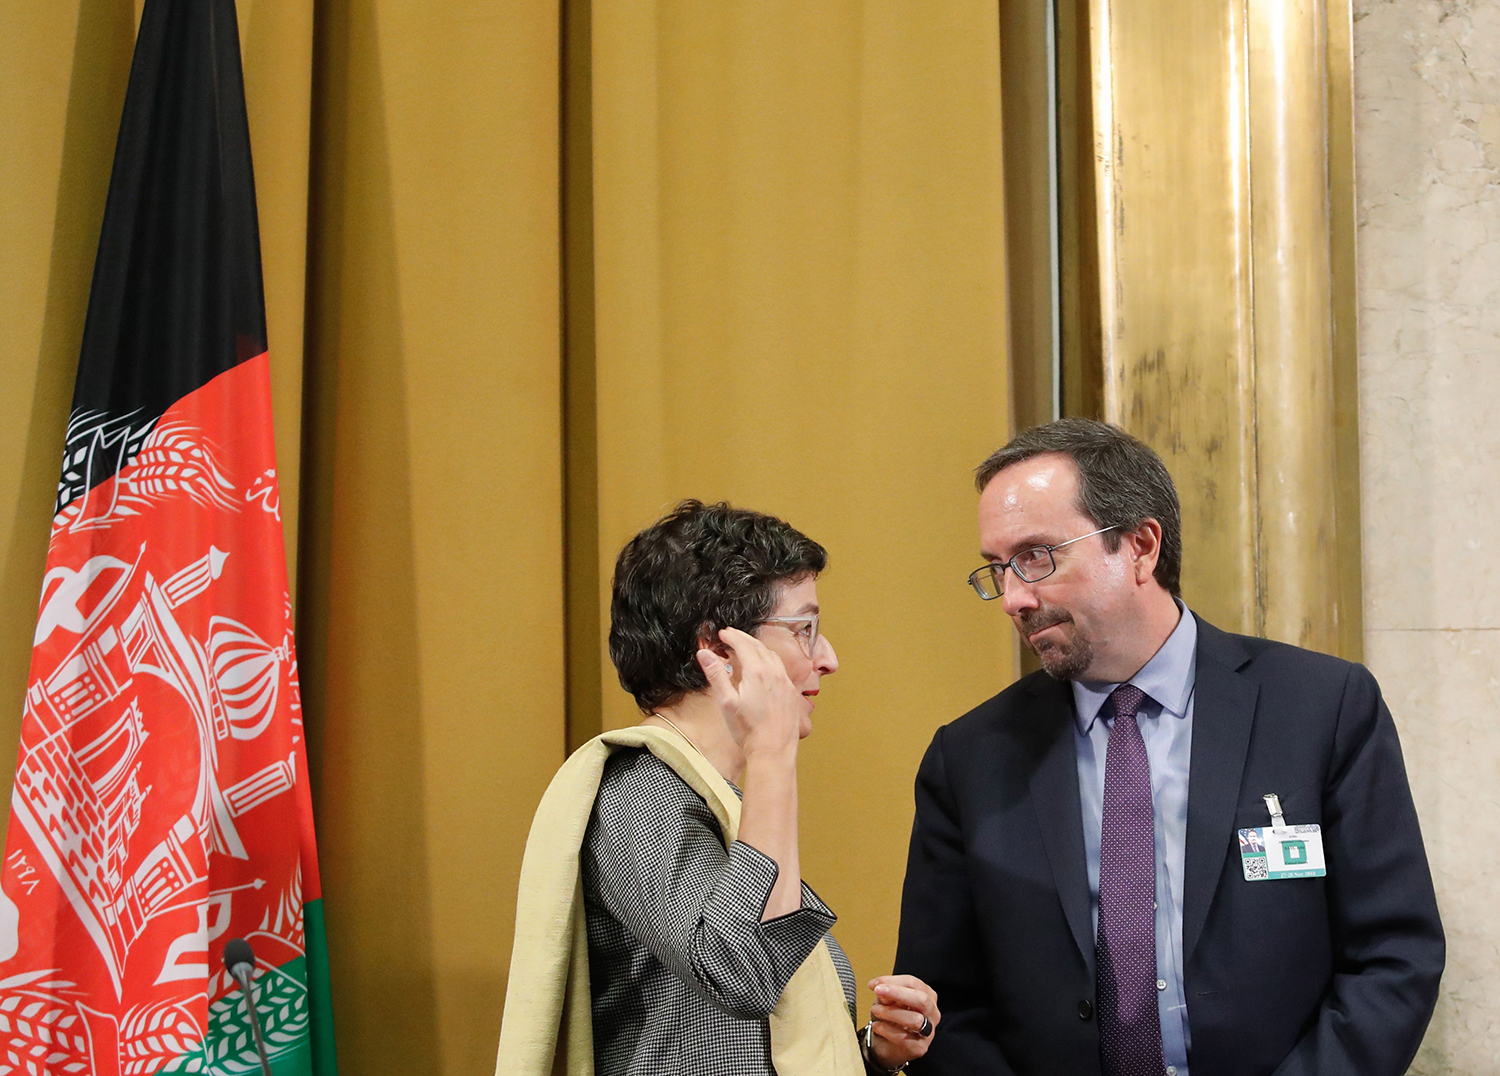 Executive director of the International Trade Centre Arancha Gonzalez talks with John Bass, then U.S. ambassador to Afghanistan, during a U.N. debate on performance of his country's private sector at the Geneva Conference on Afghanistan on Nov. 27, 2018.